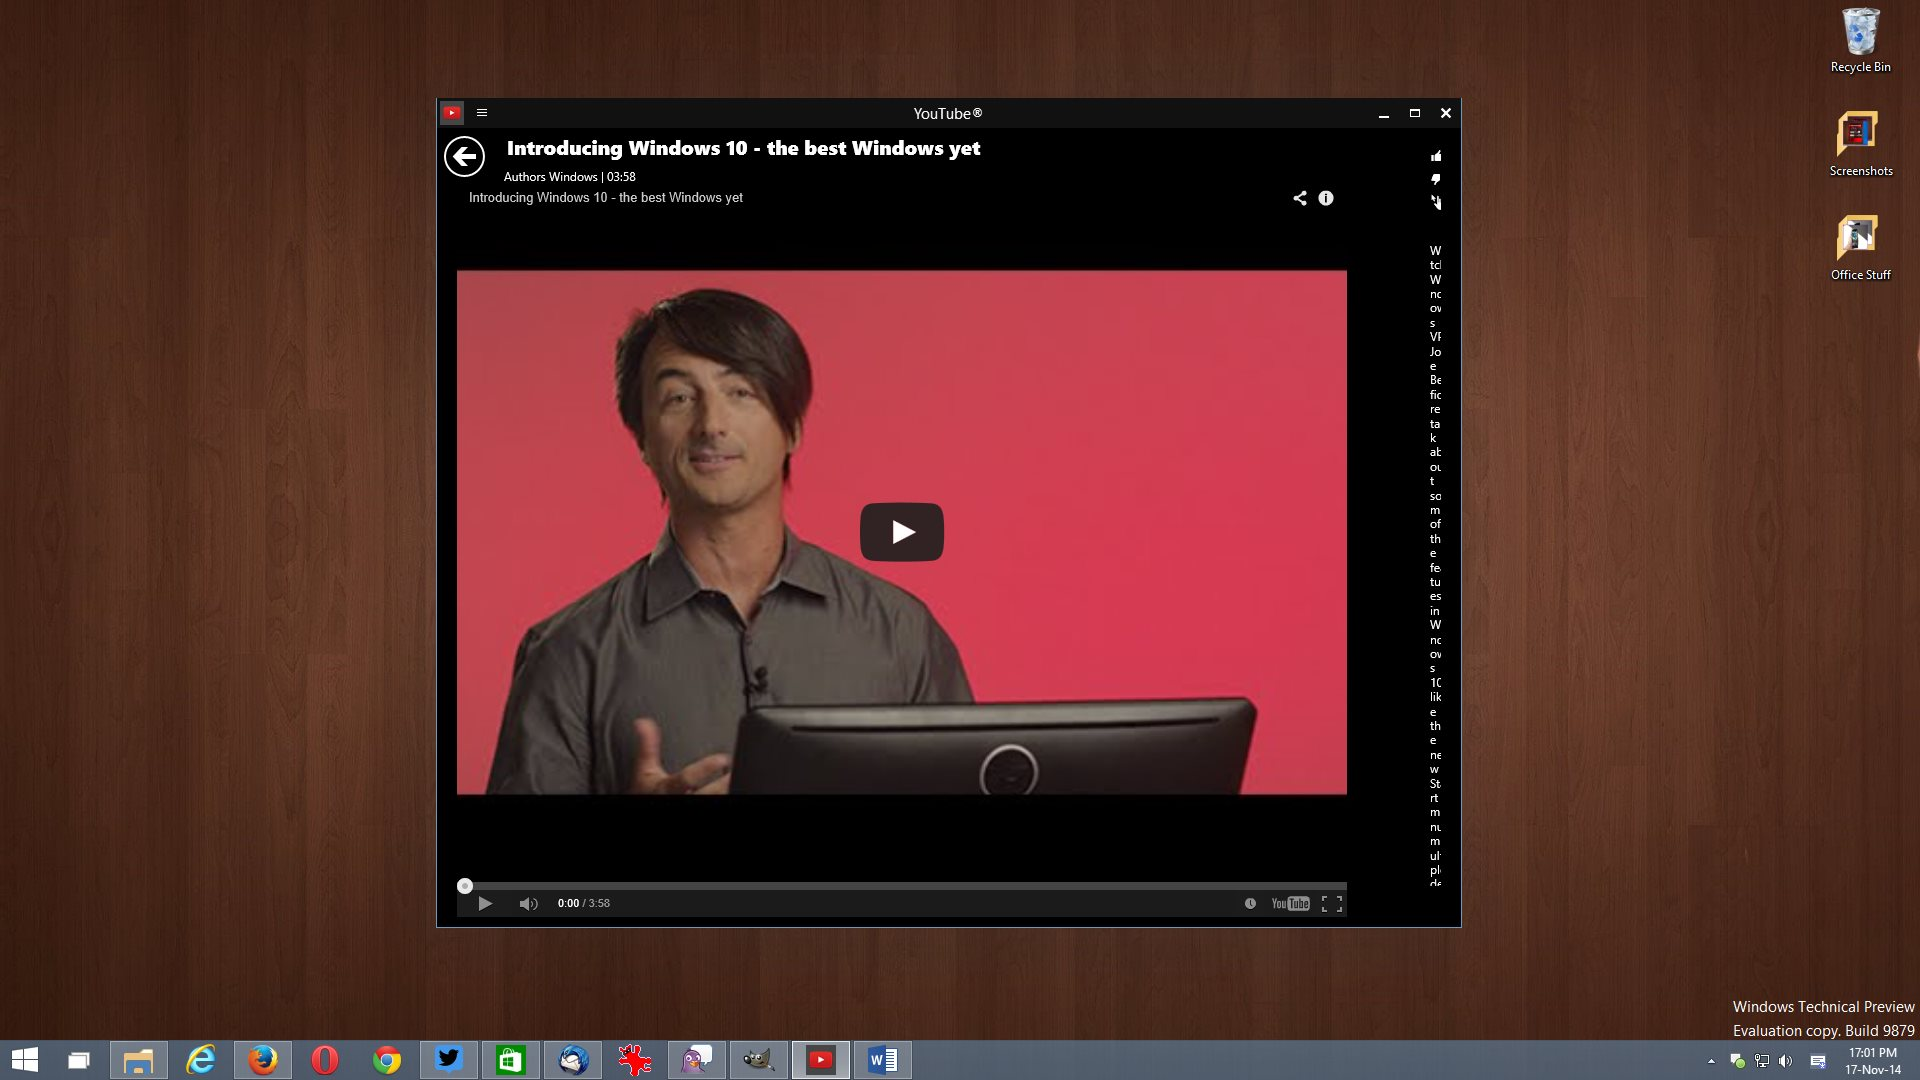 $4 YouTube App Arrives on Windows 8